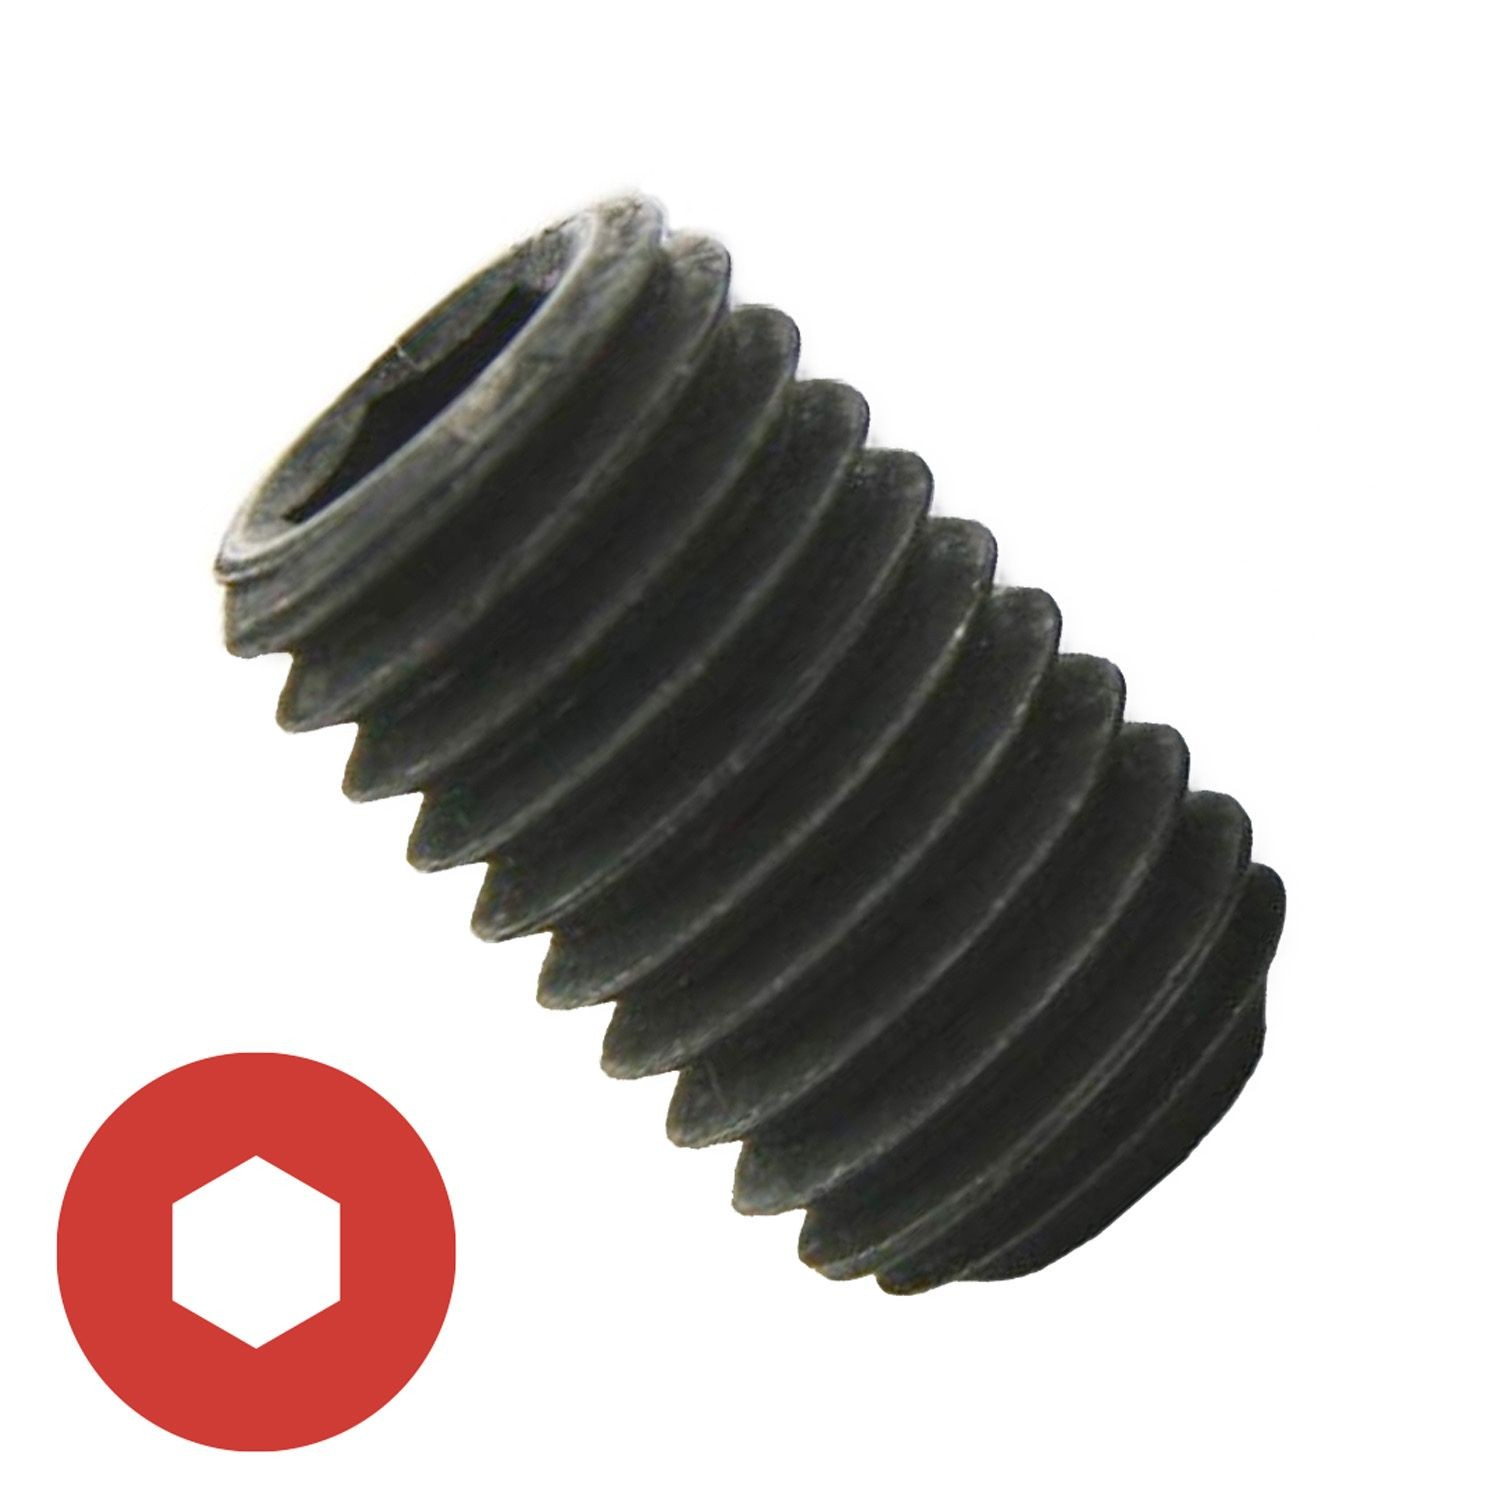 "#10-24 x 5/8"" Cup Point Socket Set Screw"